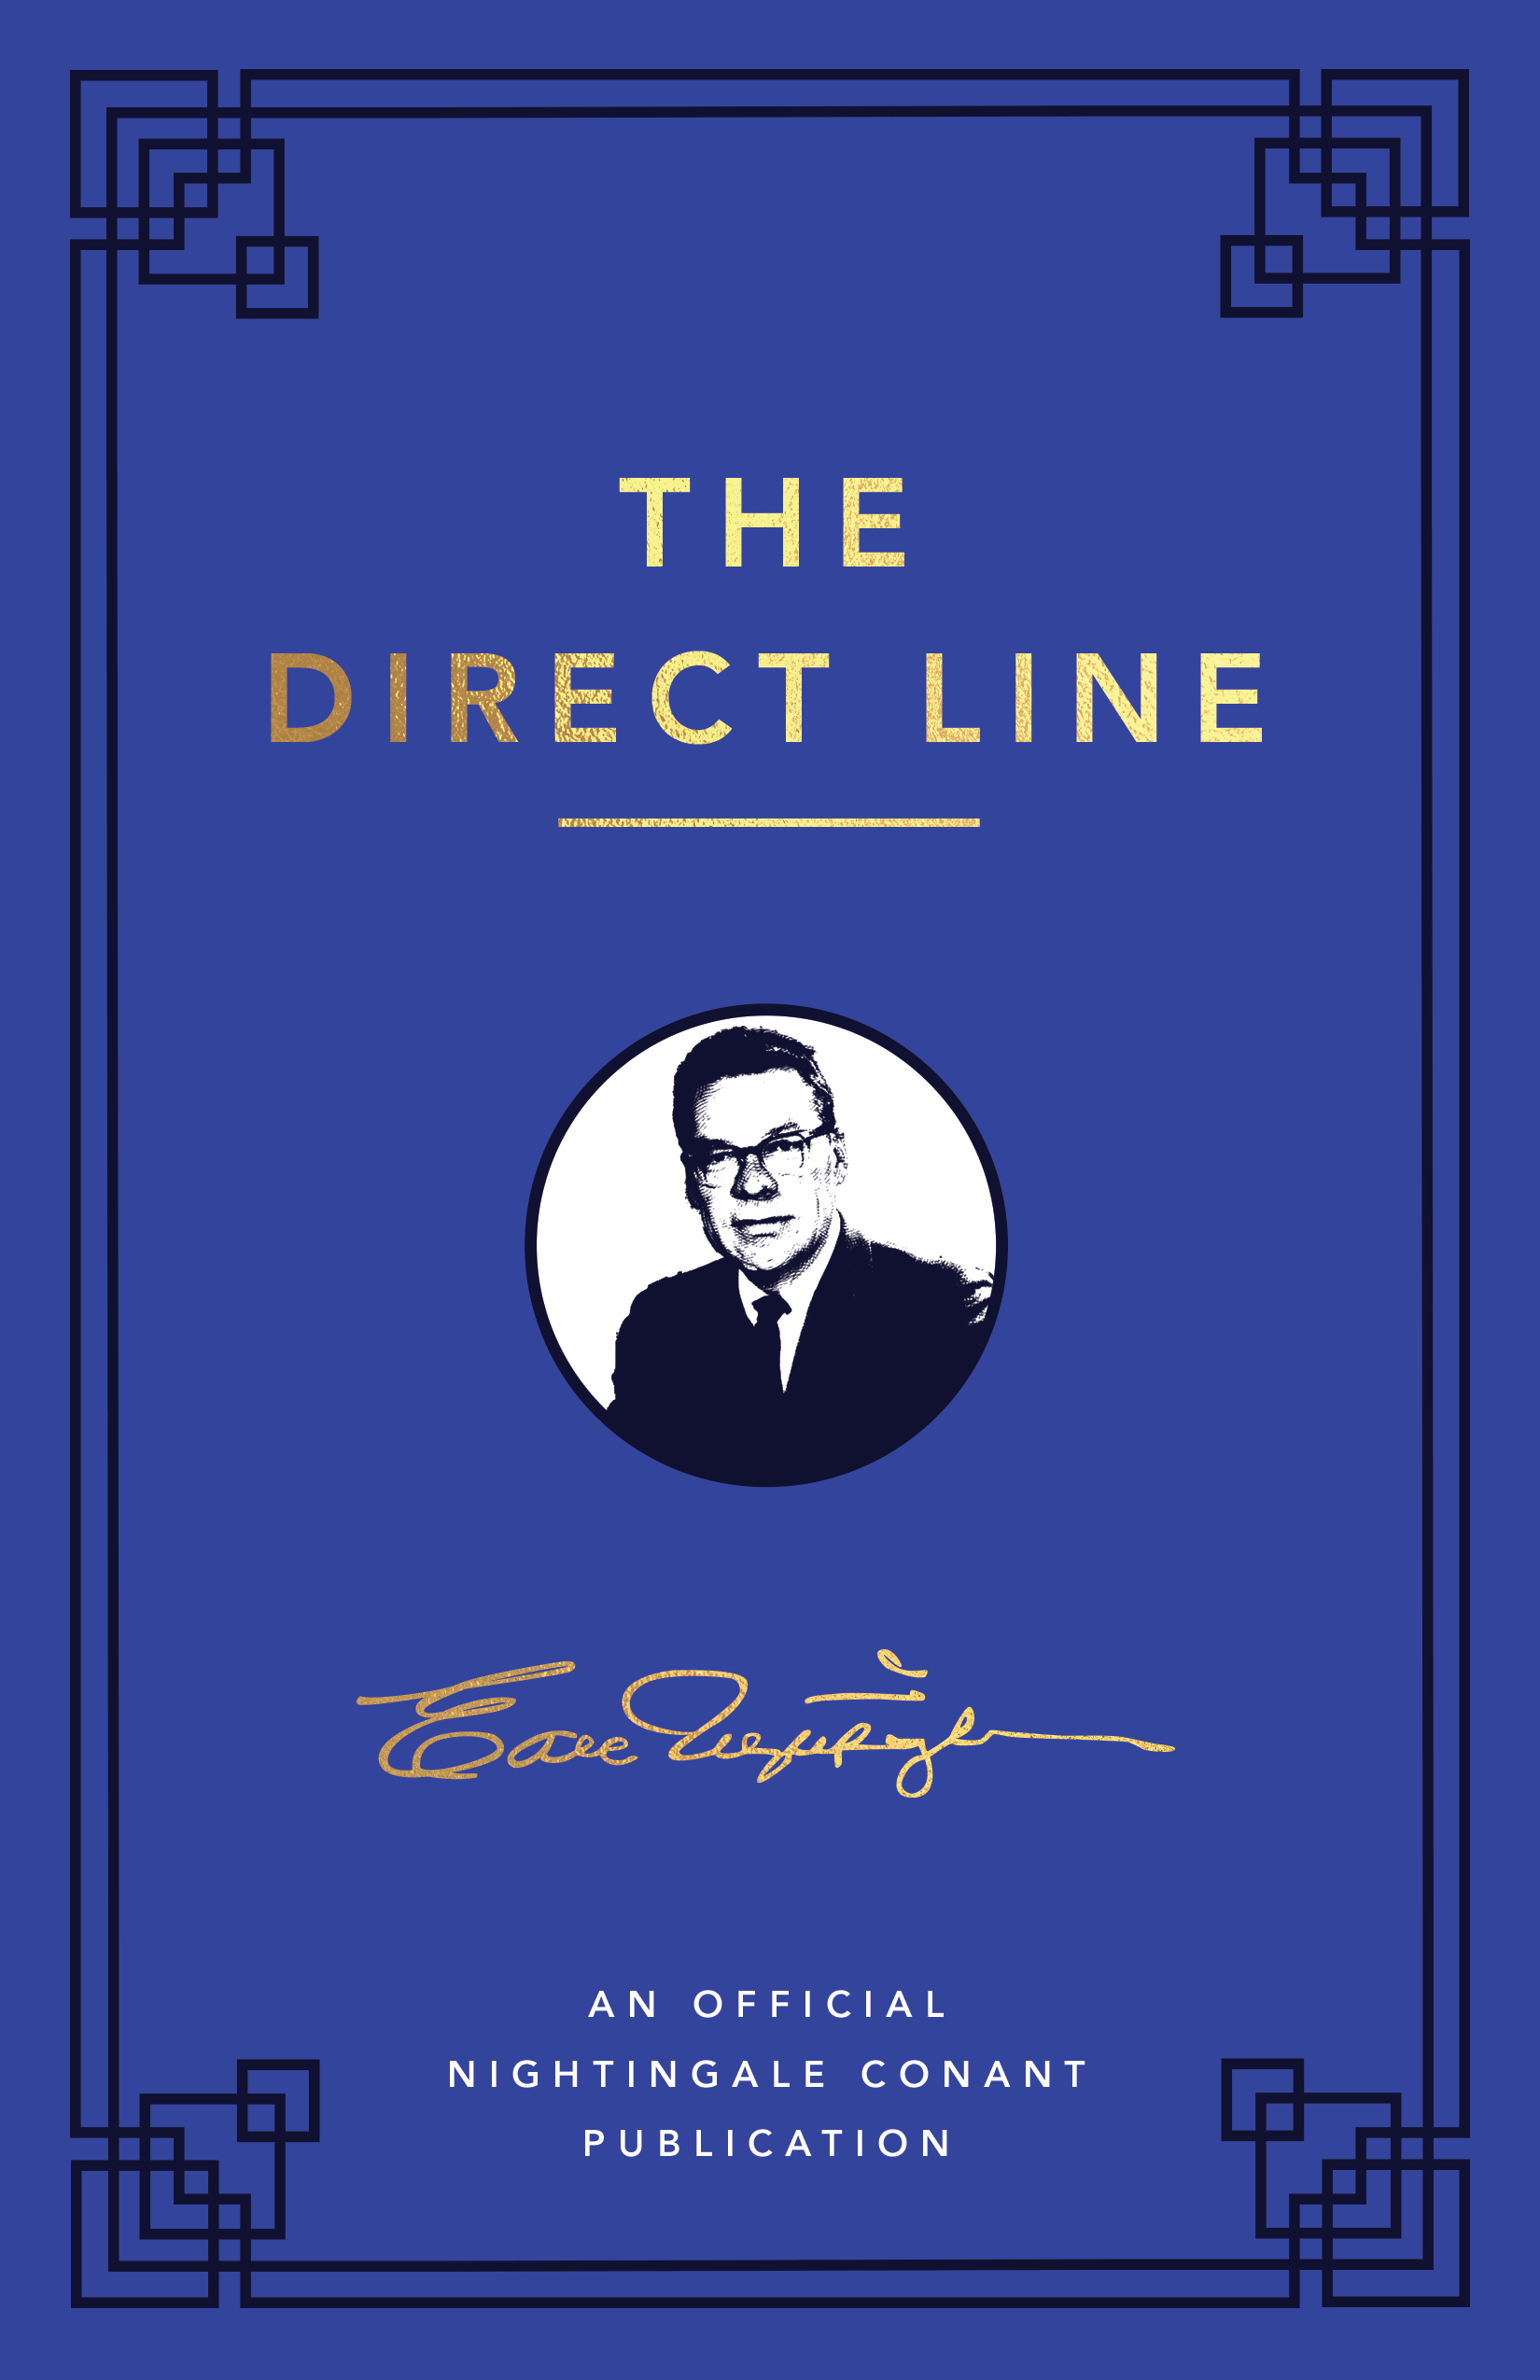 The Direct Line - Earl Nightingale